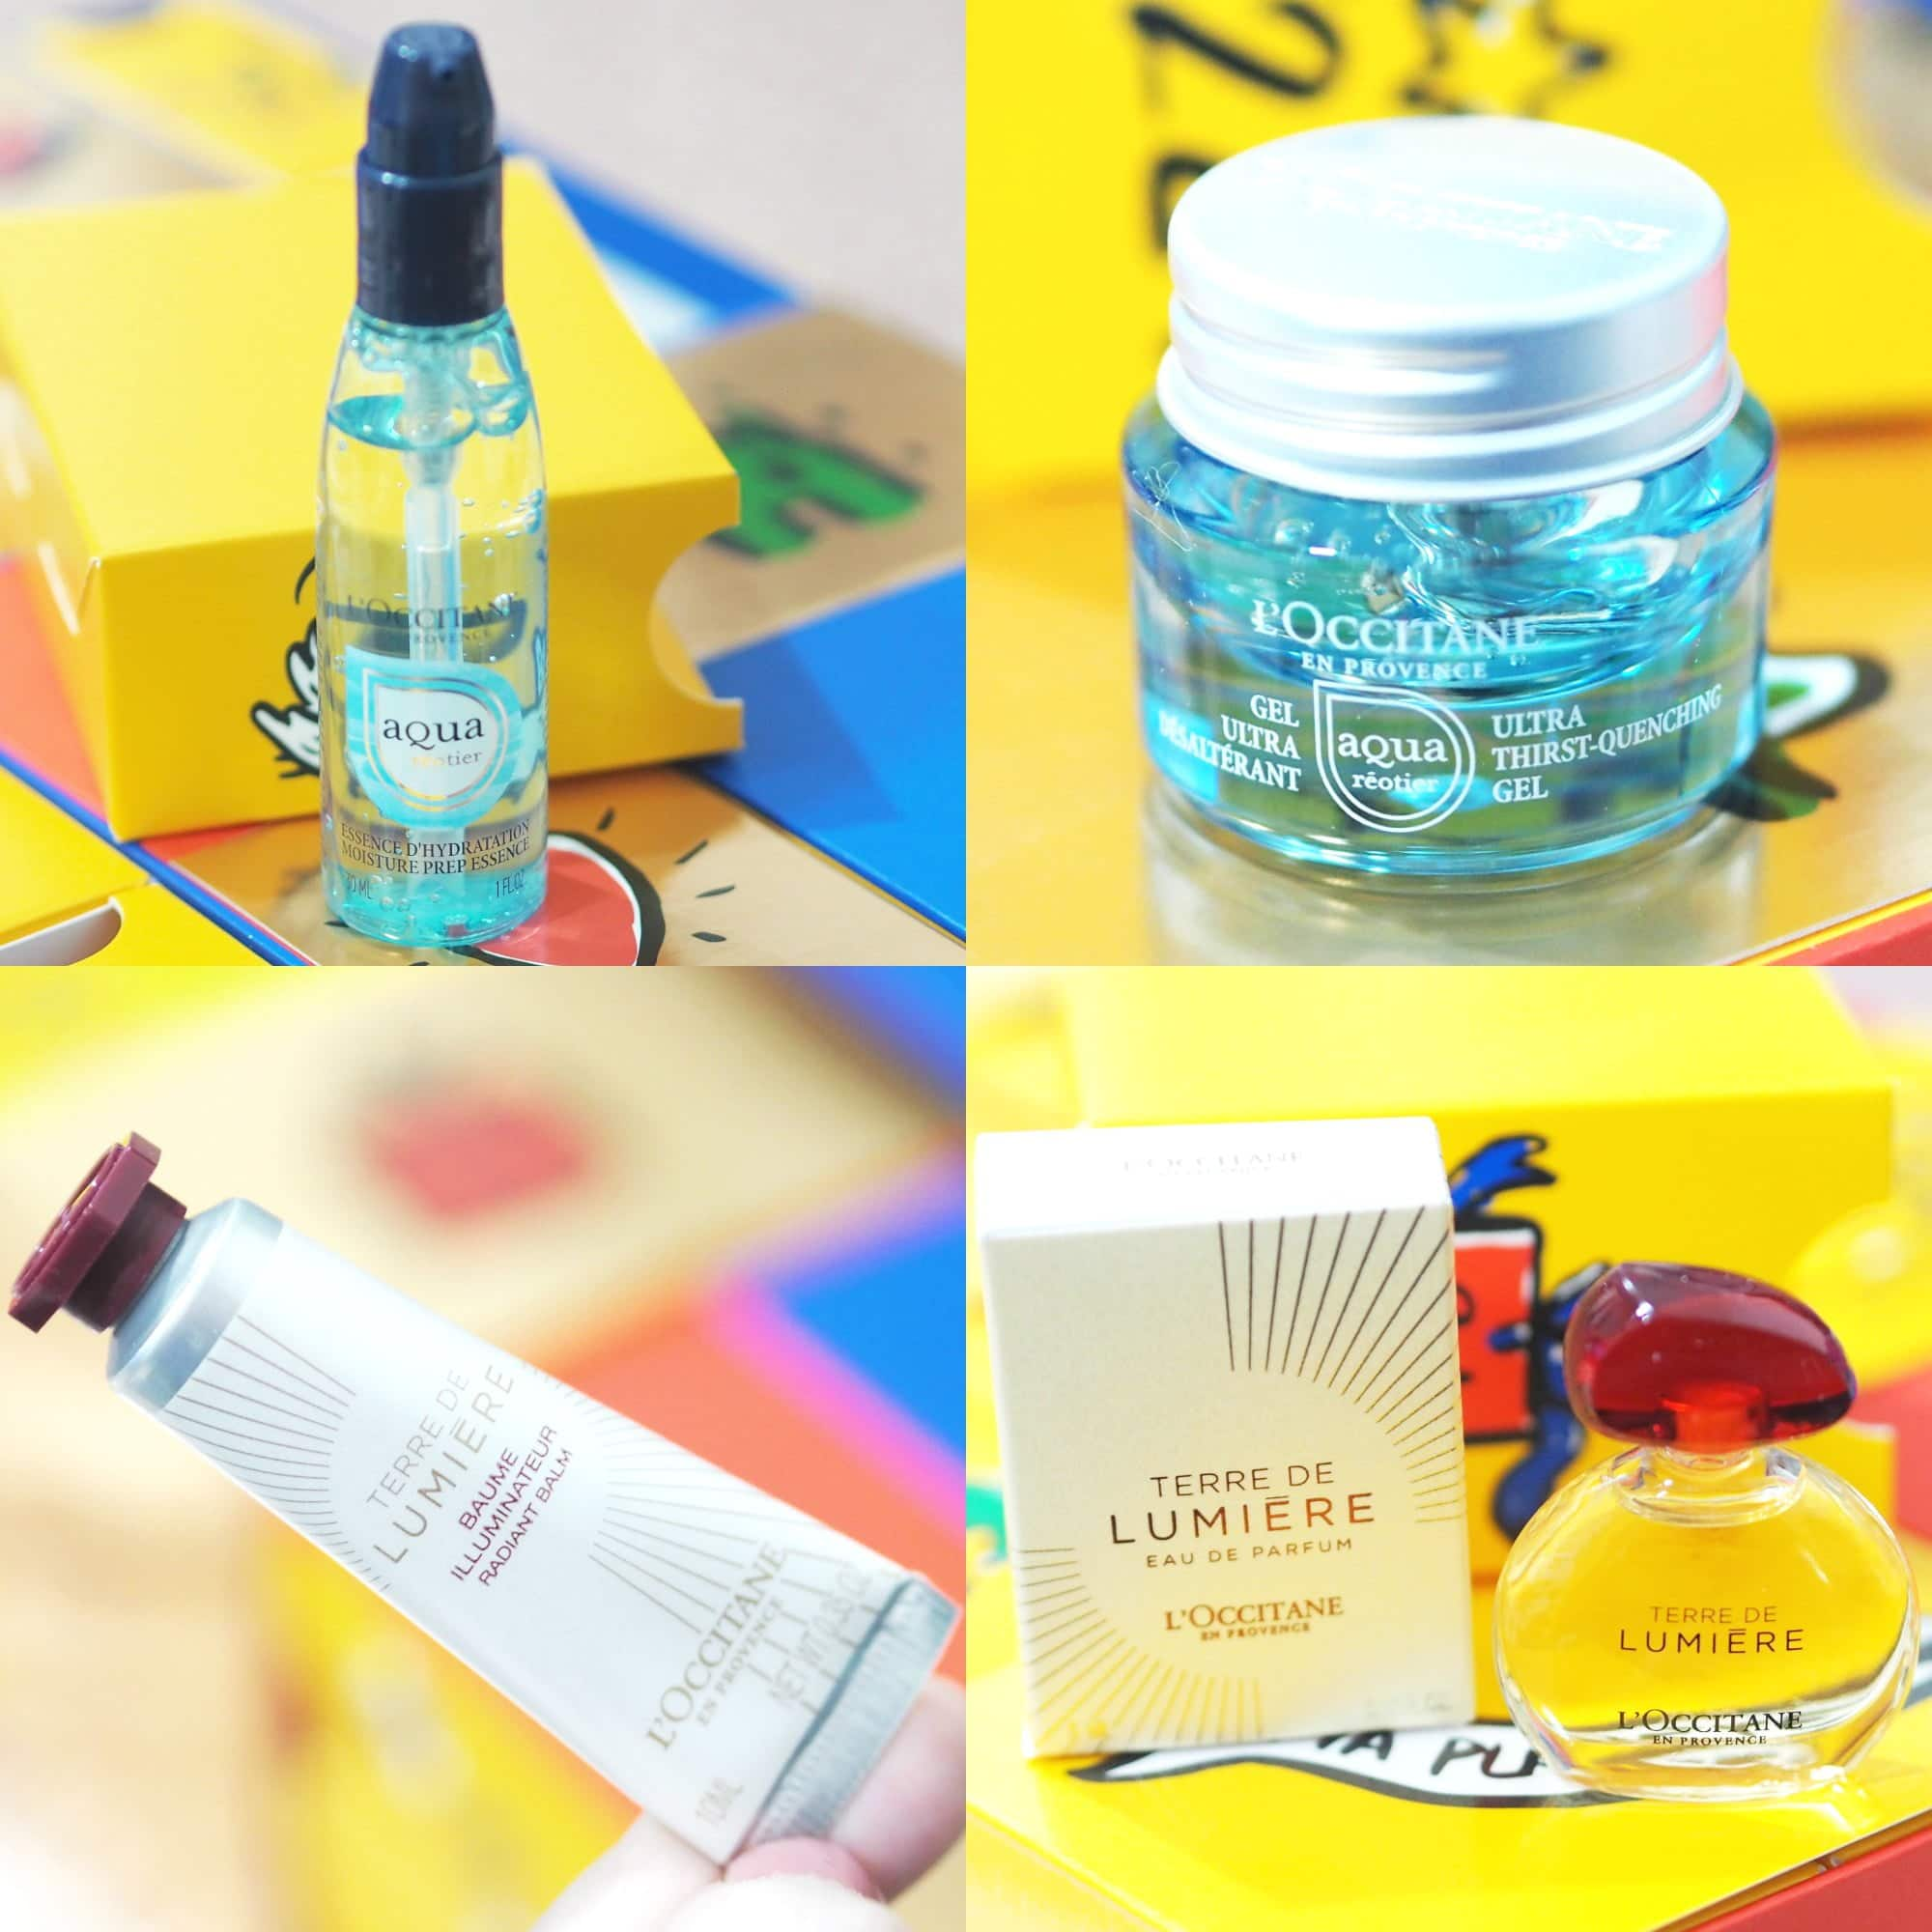 L'Occitane Luxury Beauty Advent Calendar Unboxing and Review ft. 24 drawers containing skincare, haircare, bodycare and fragrance